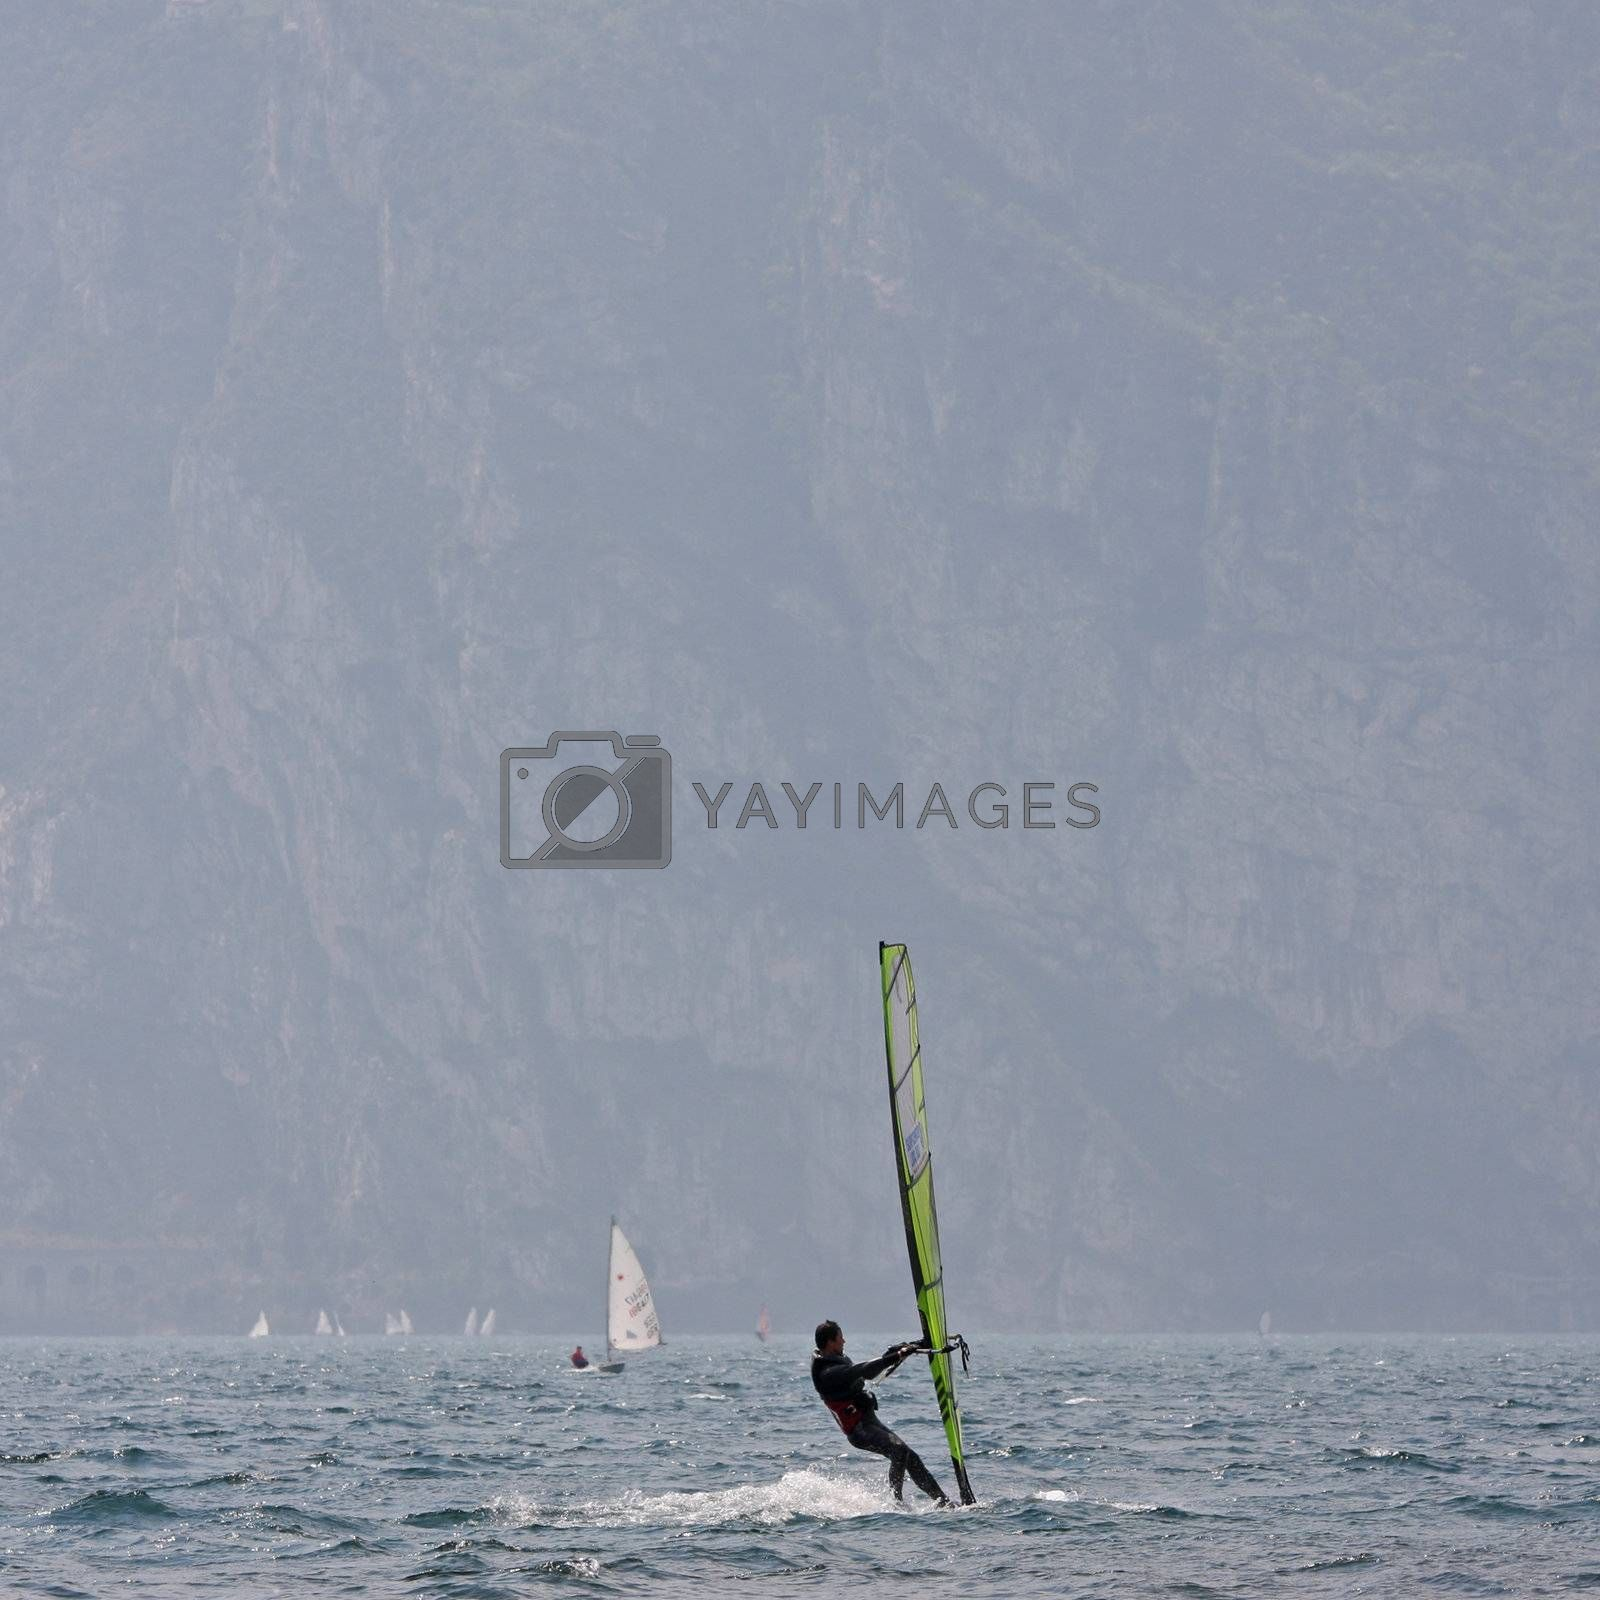 wind surfer at garda lake in italy by bernjuer